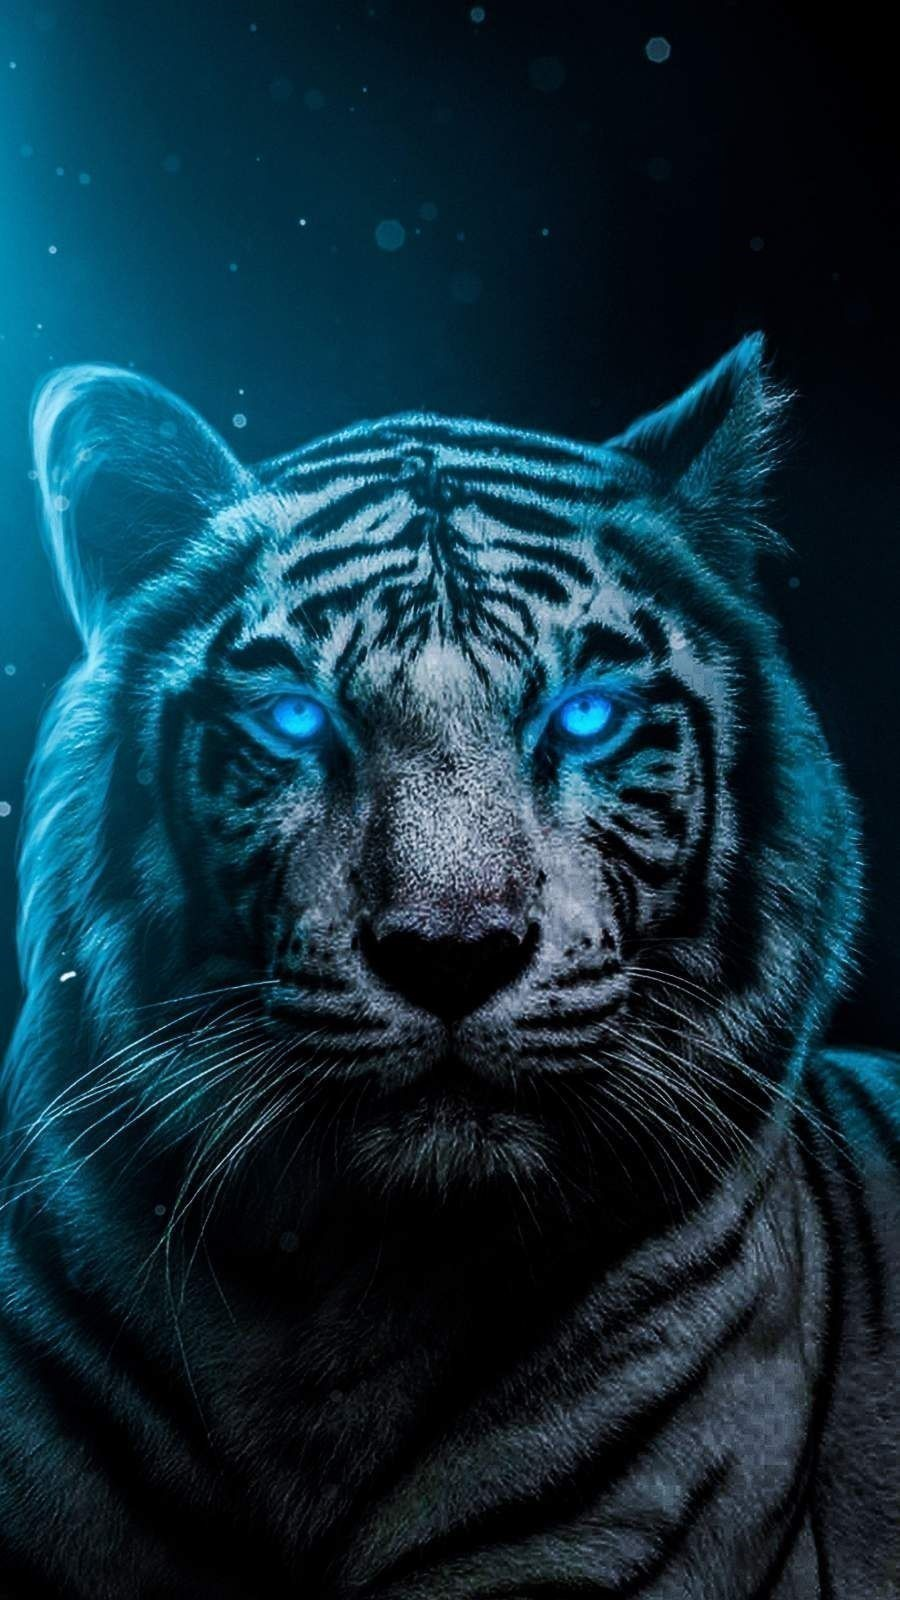 Blue Eyes Tiger Wallpaper Wallpaper Download High Resolution 4k Wallpaper